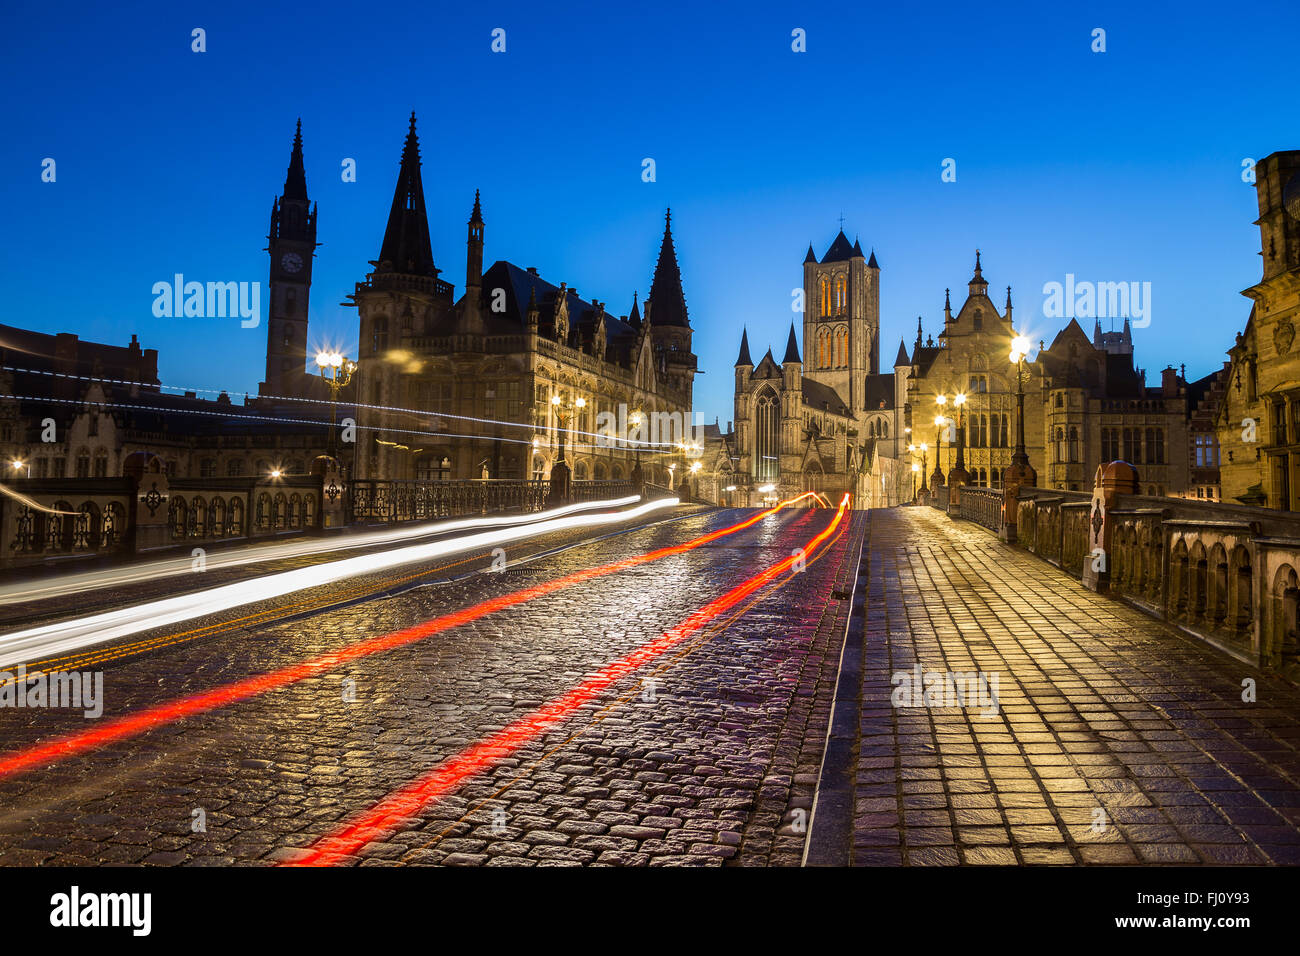 A view towards Saint Nicholas' Church in Ghent City Center at dusk in the morning. The trails of traffic can - Stock Image